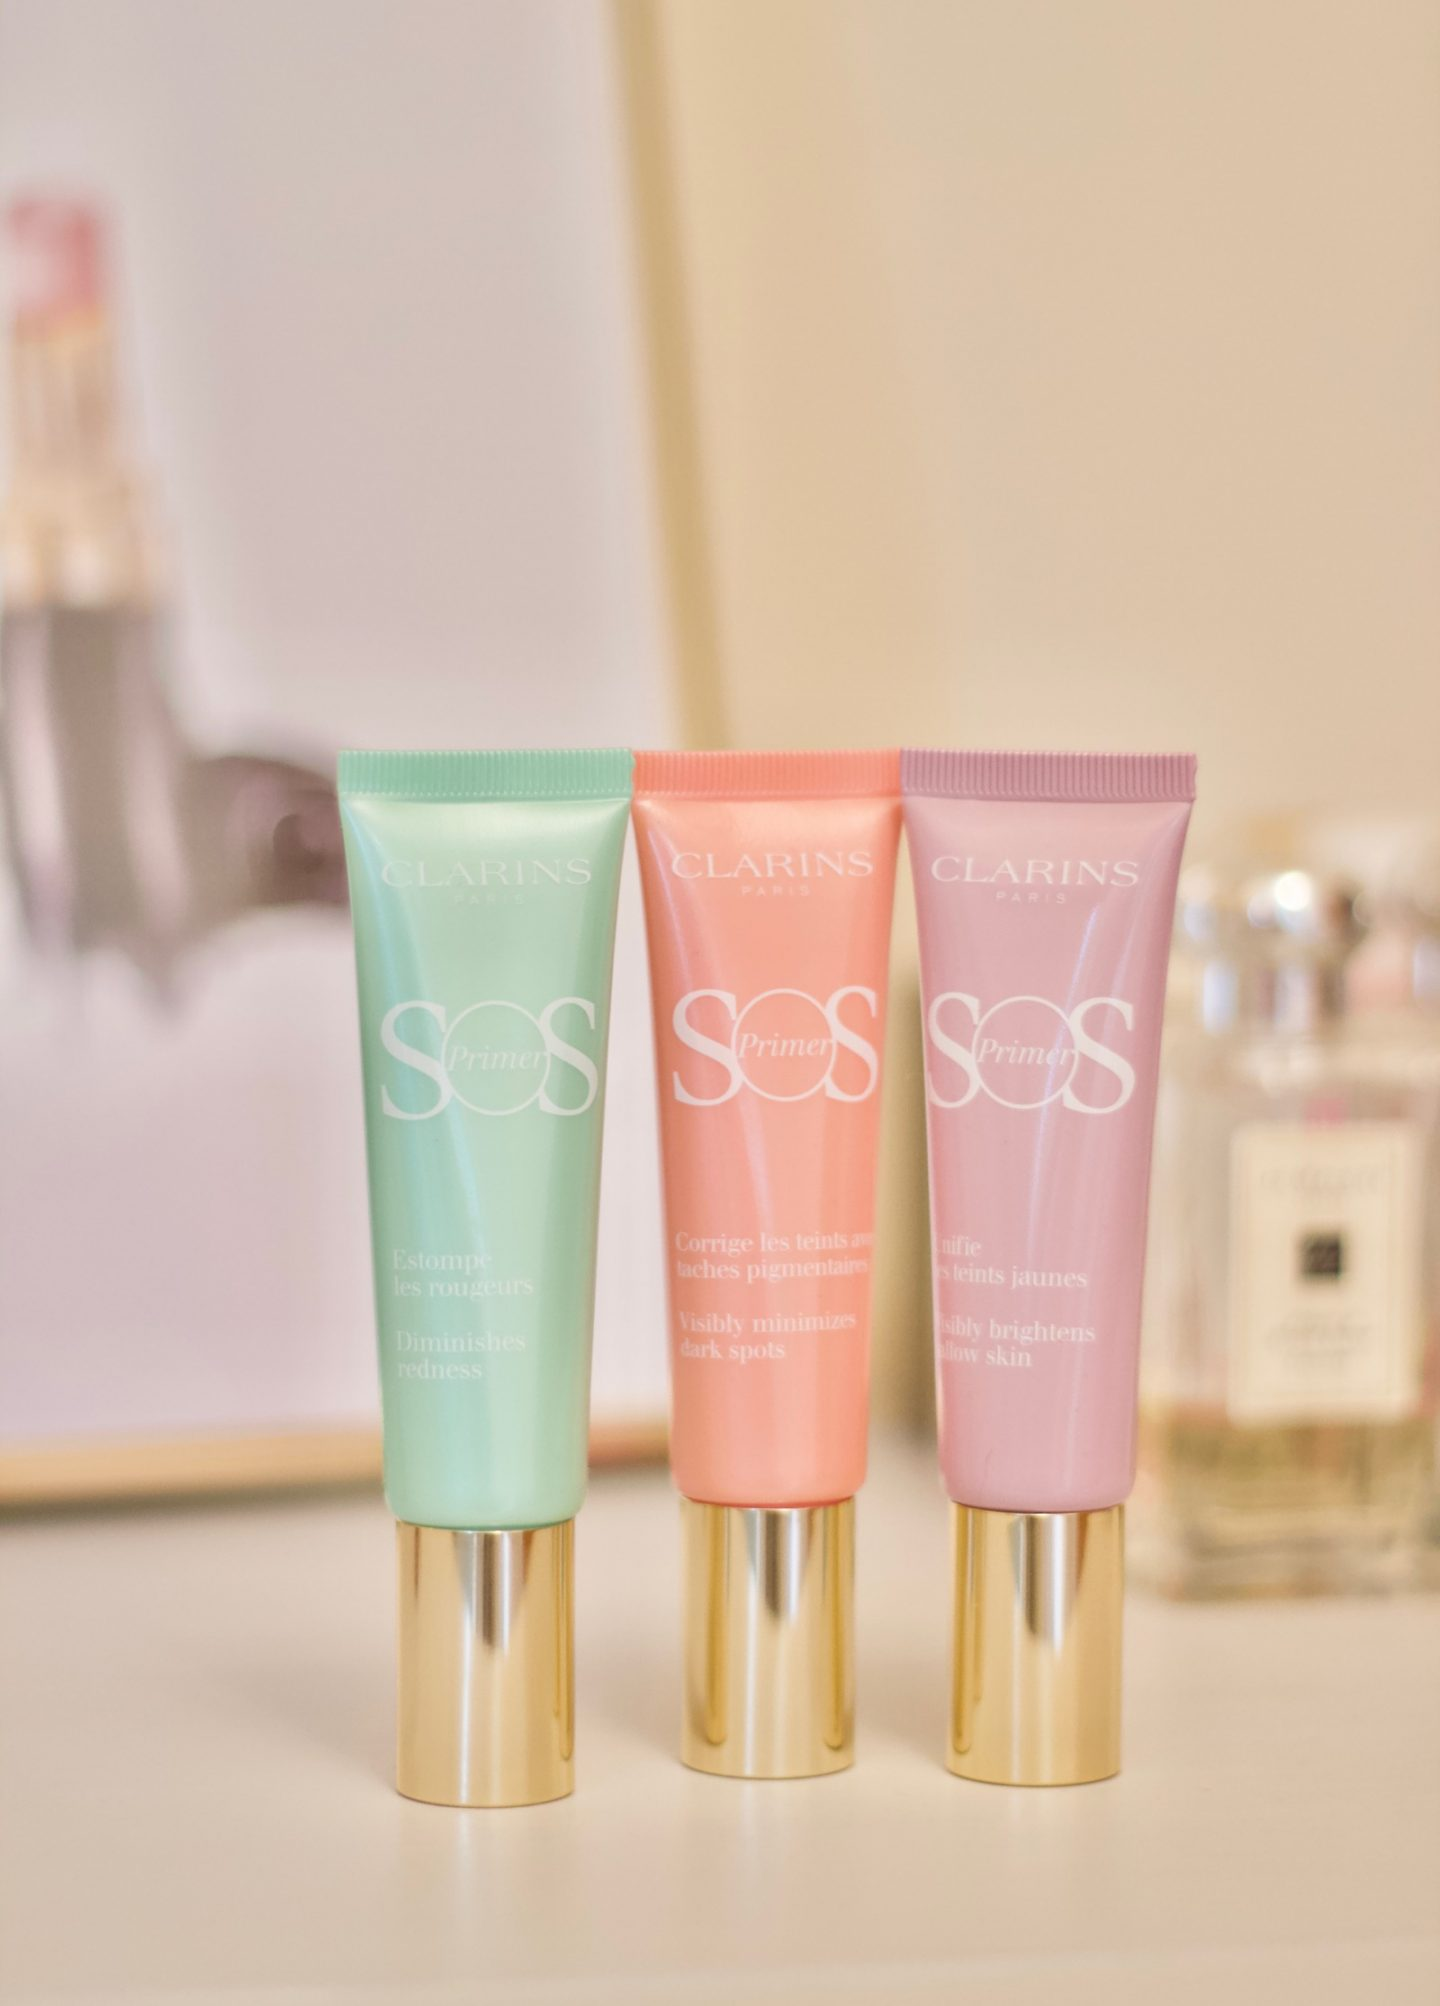 Clarins Colour Definition Fall 2011 Makeup Collection: Clarins SOS Colour-Correcting Primers